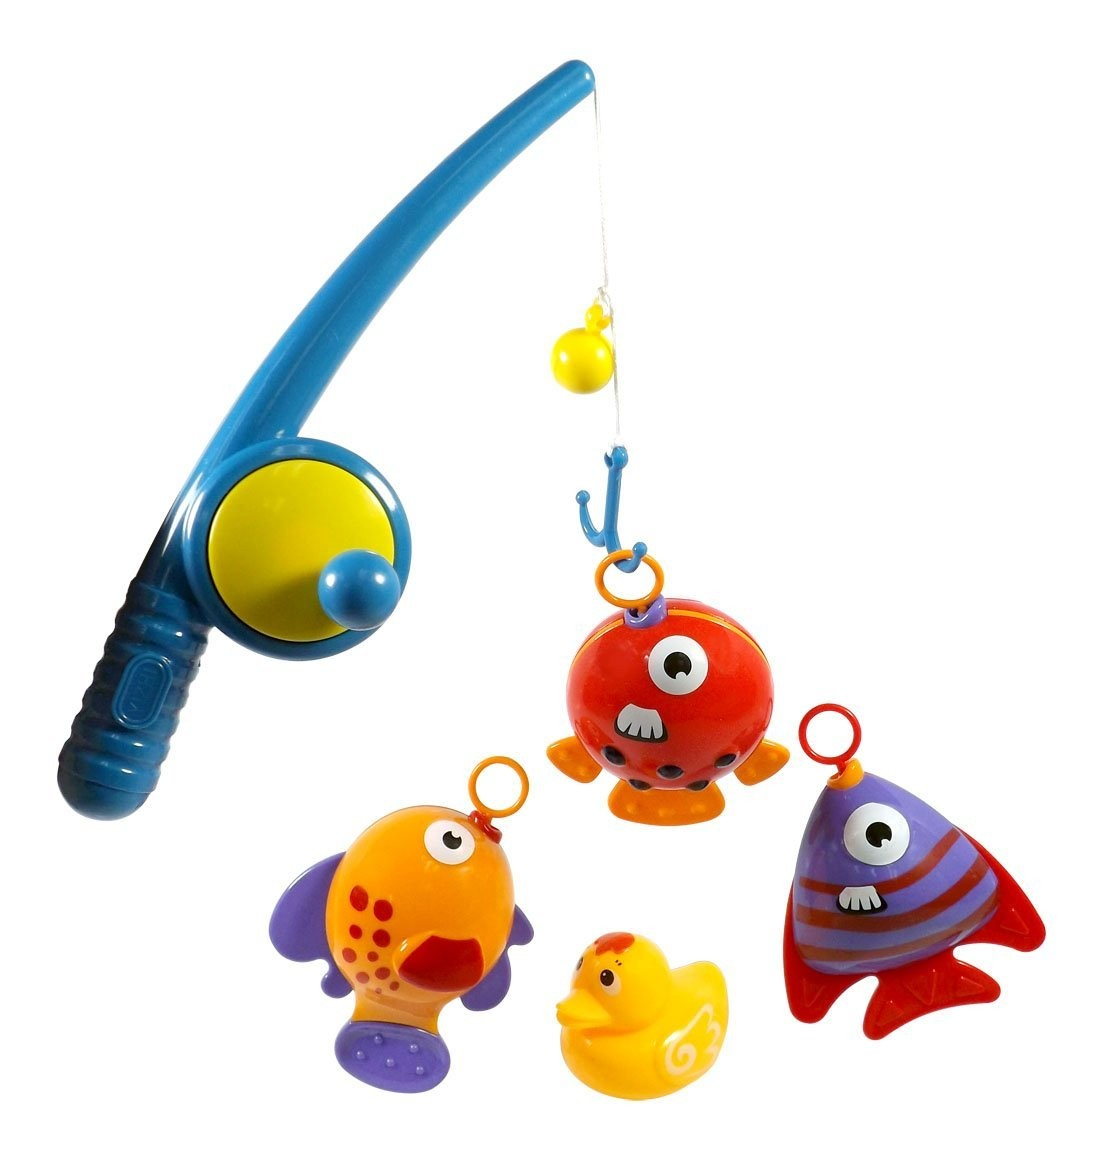 Hook and Reel Fishing Toy Playset for Kids